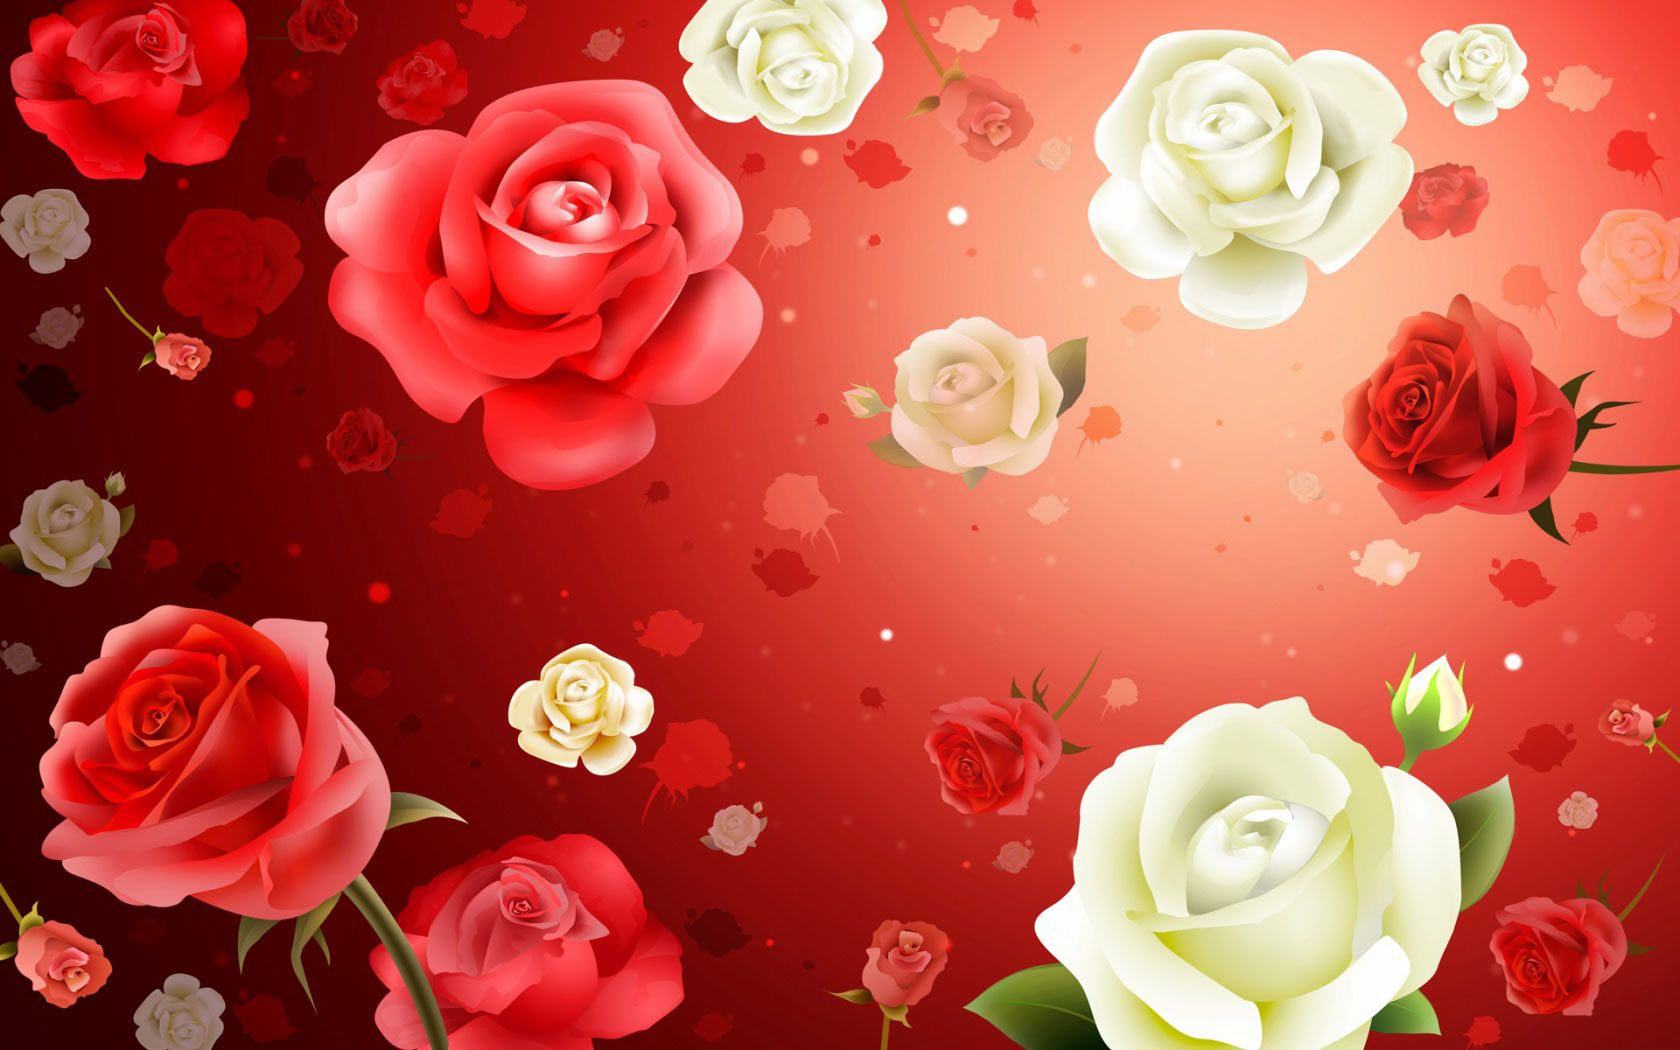 Roses Flowers Backgrounds Windows 7 Desktop Wallpaper High